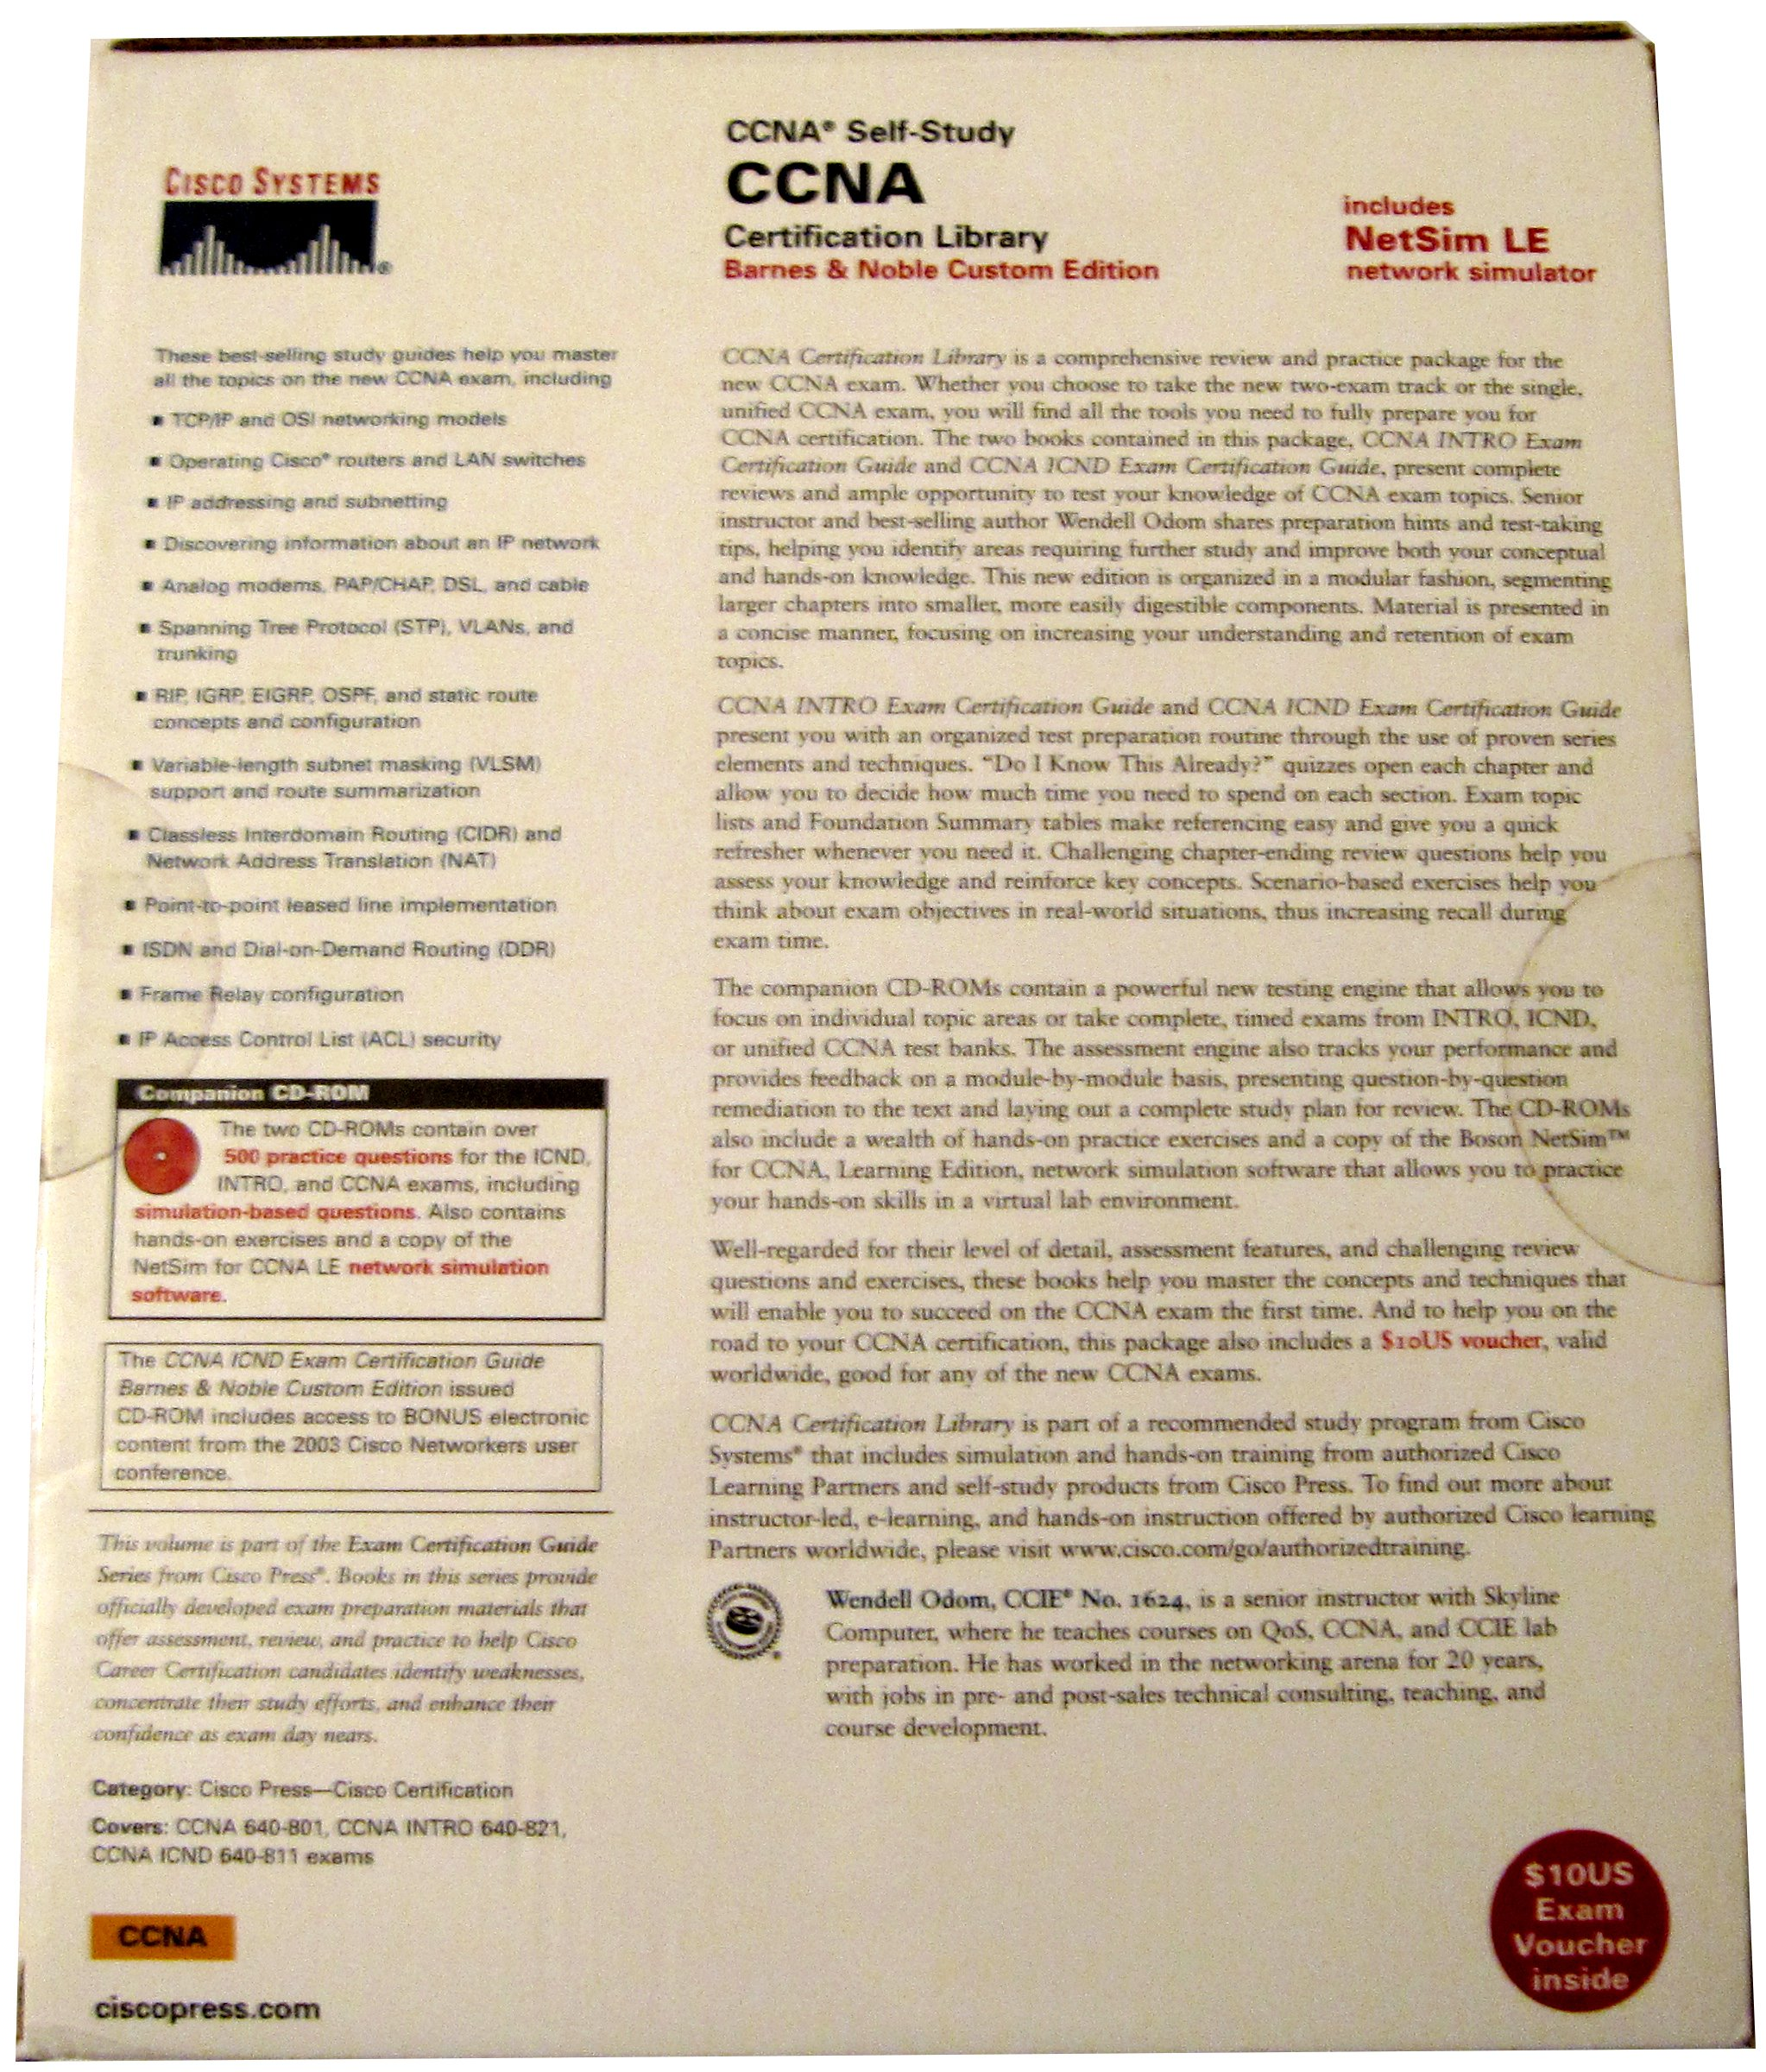 Ccna certification library ccna self study the official self ccna certification library ccna self study the official self study test preparation package for the cisco ccna 640 801 icnd 640 811 and intro 640 821 1betcityfo Gallery